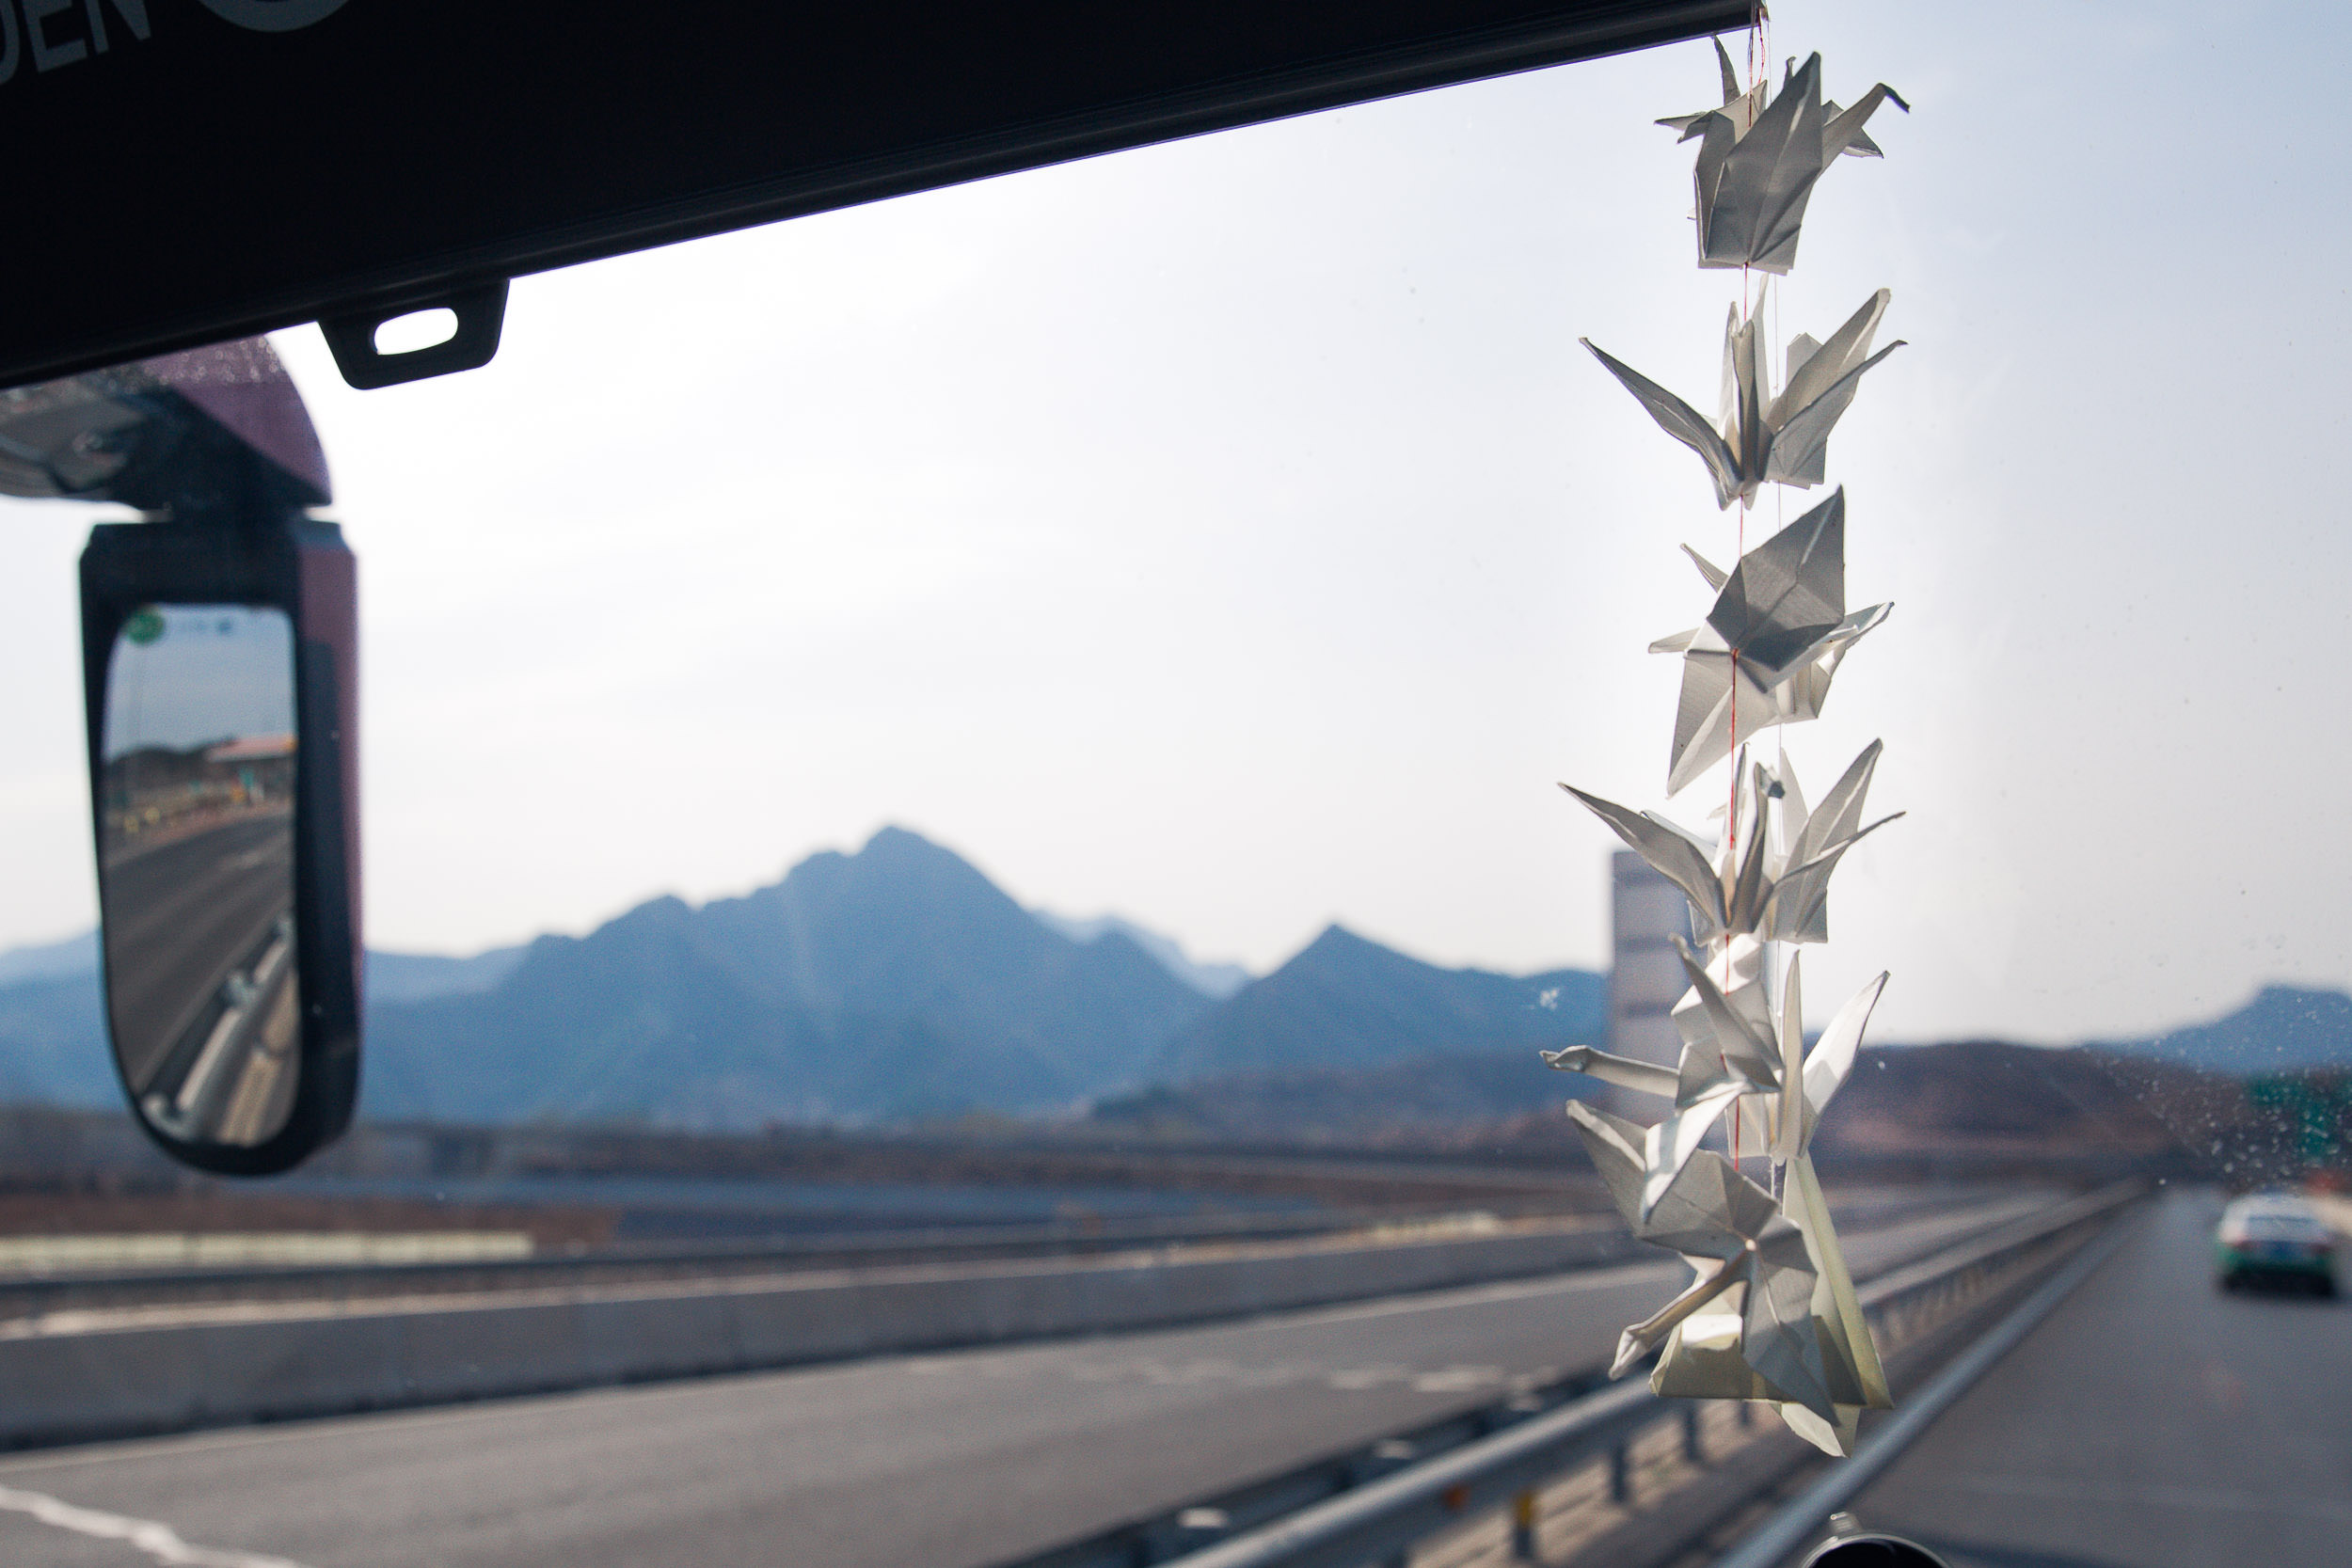 Paper_Cranes_Great_Wall